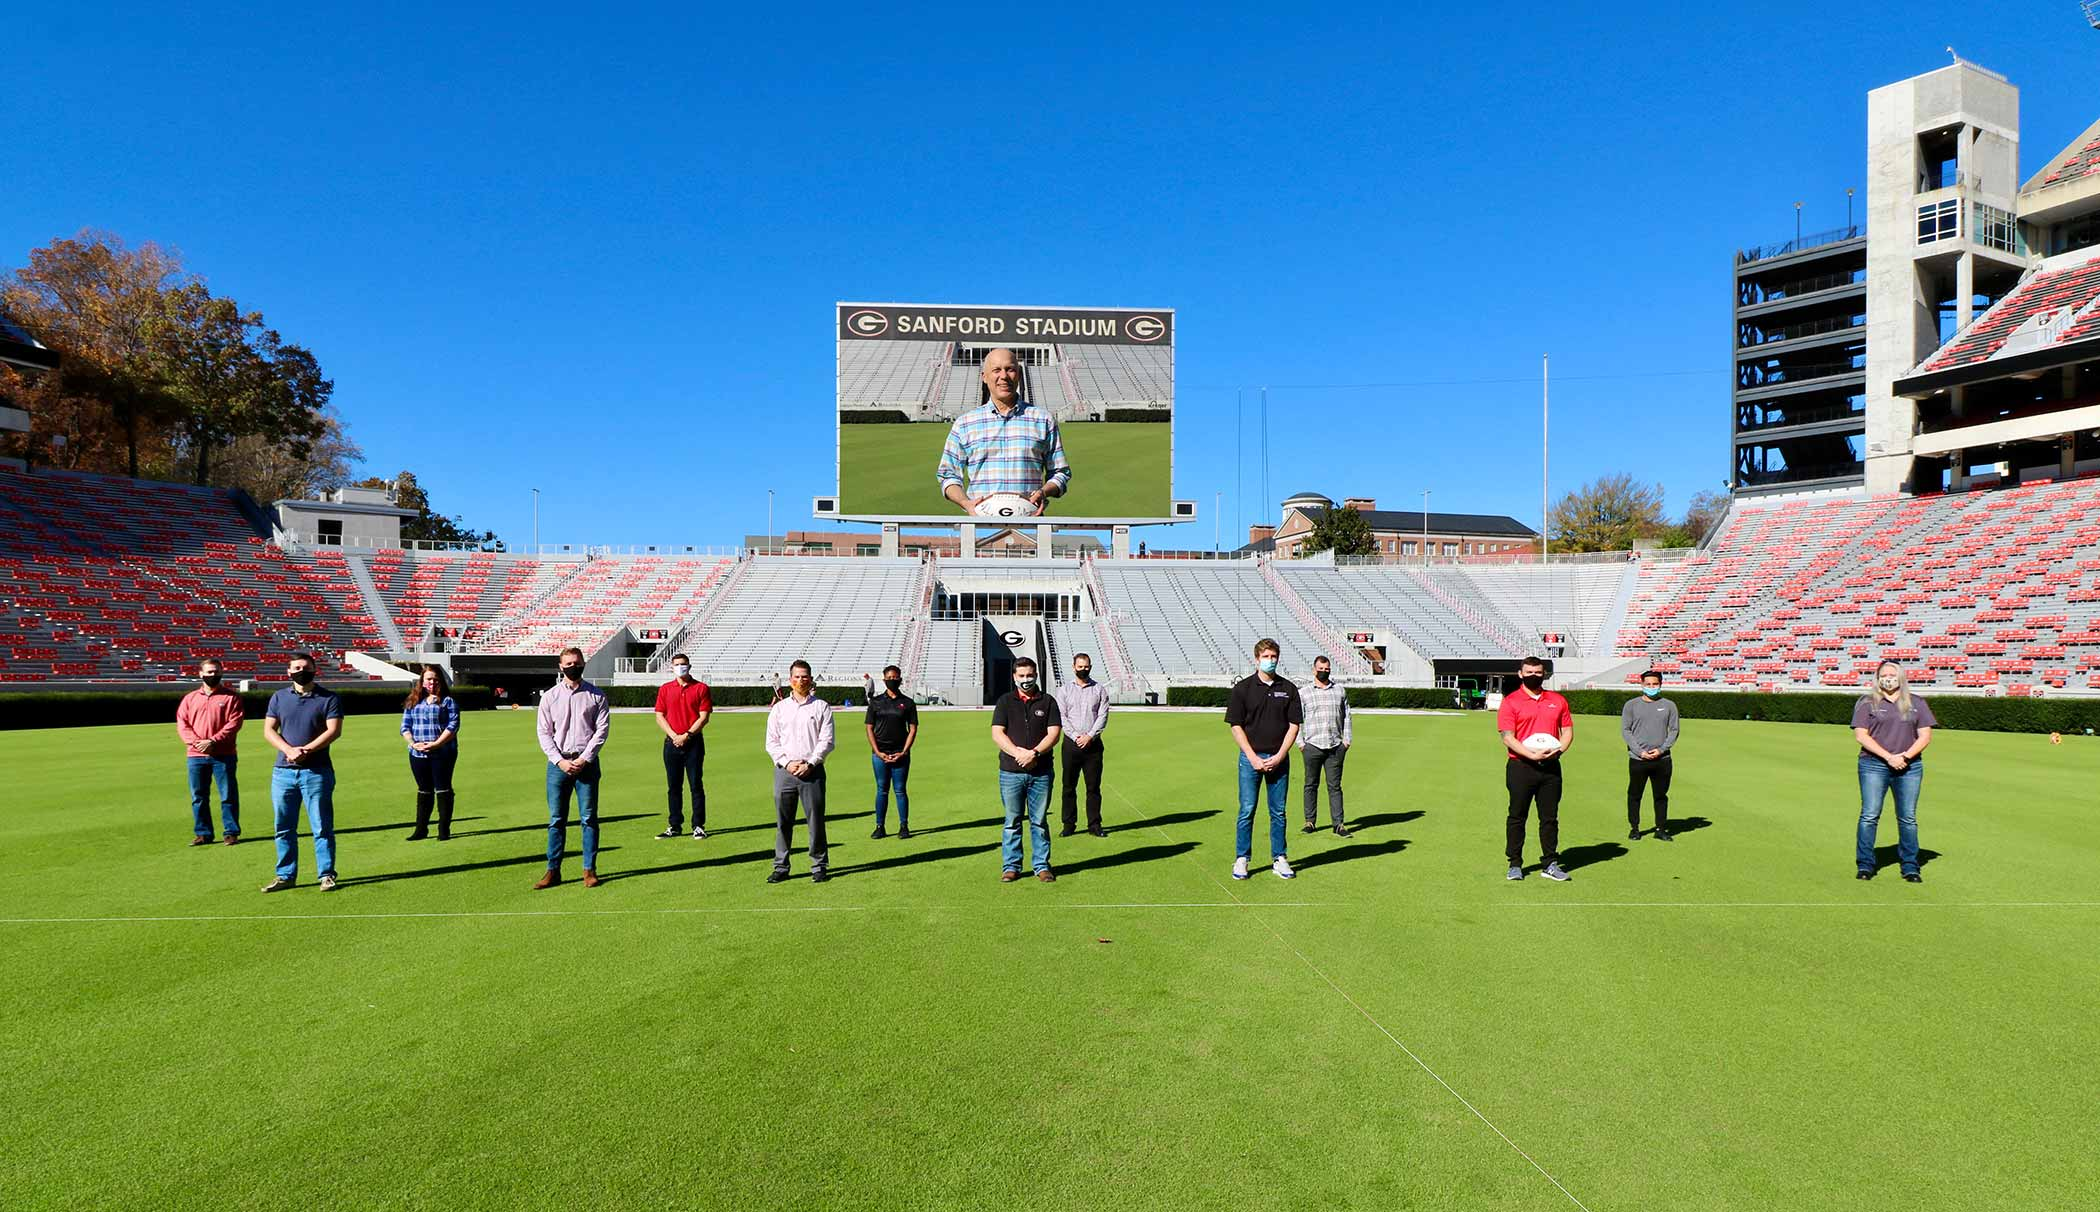 Ted Barco, Director of the Student Veterans Resource Center, standing with some UGA student veterans on the football field in Sanford Stadium.